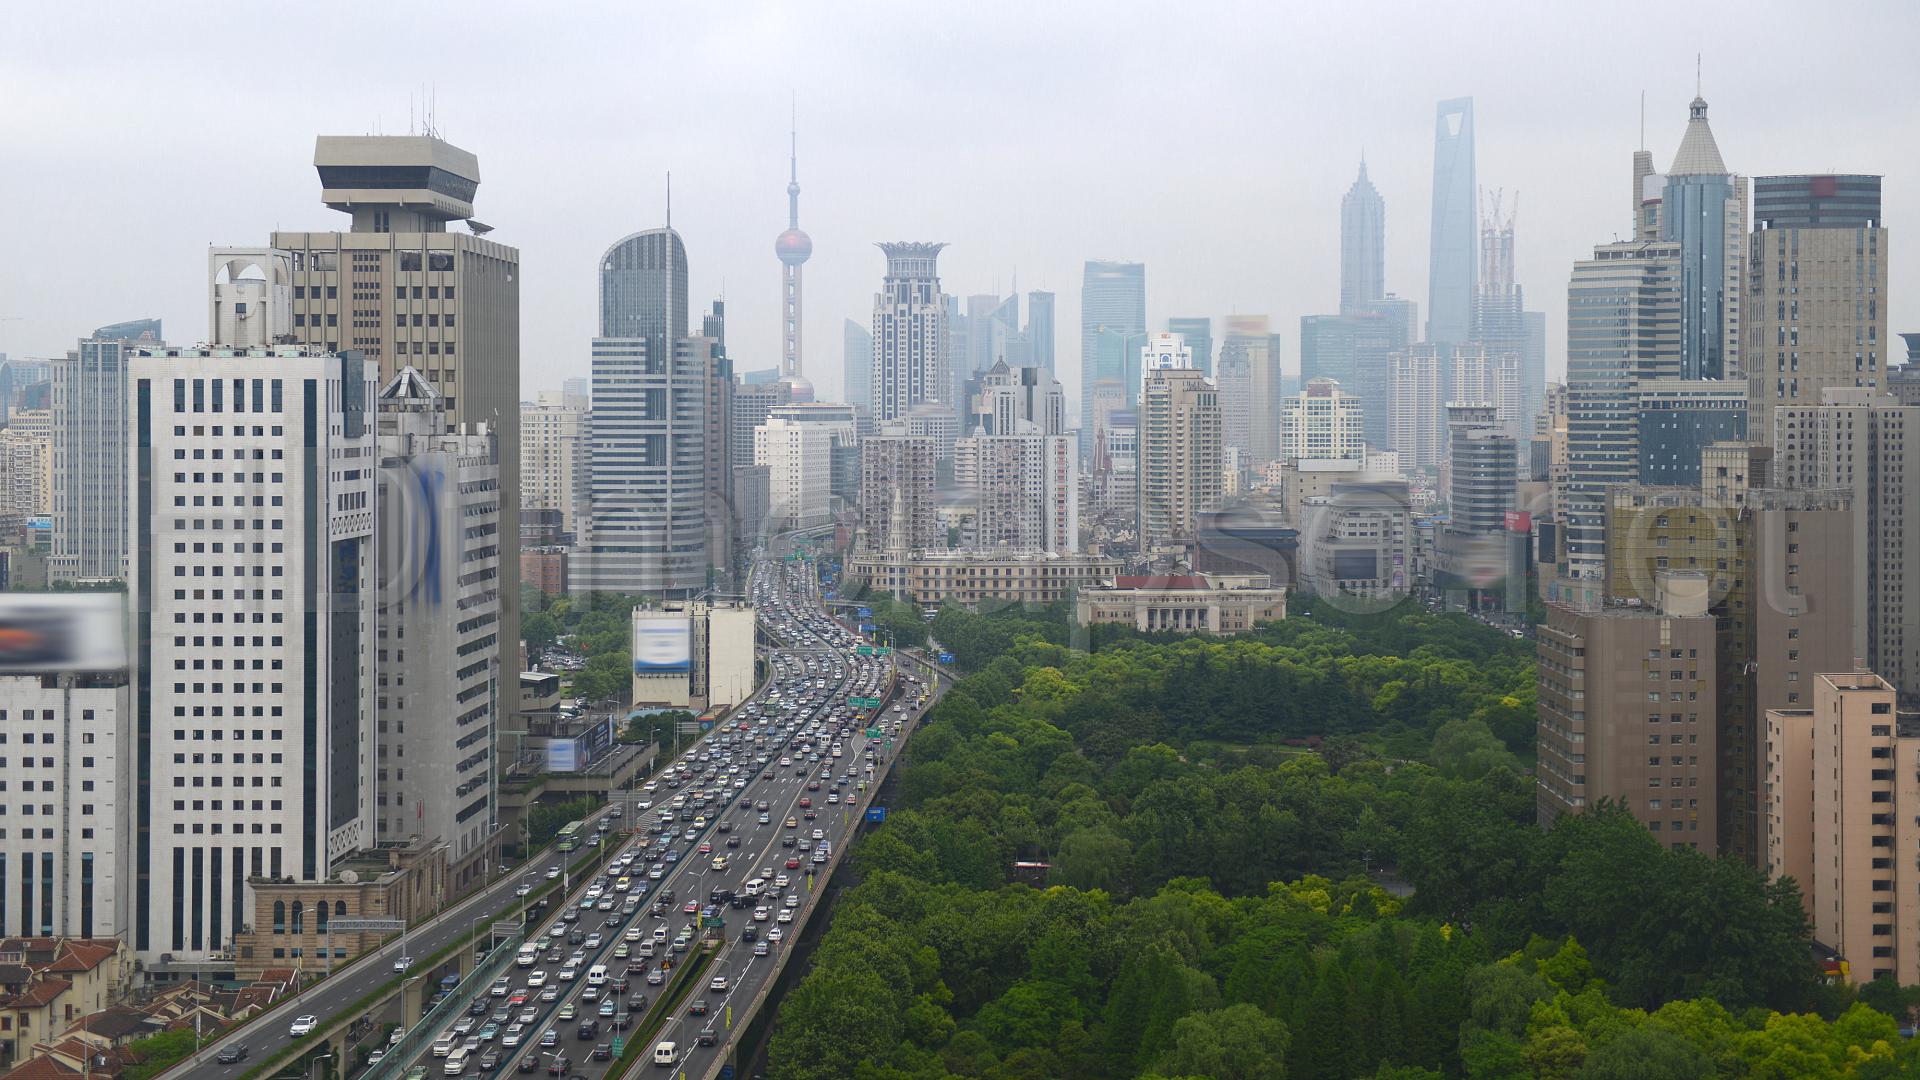 City 5186. Aerial View of Expressway of Shanghai, Oriental Pearl Tower, Jin Mao Tower, Blurred Logos Shanghai - China 00:00:12